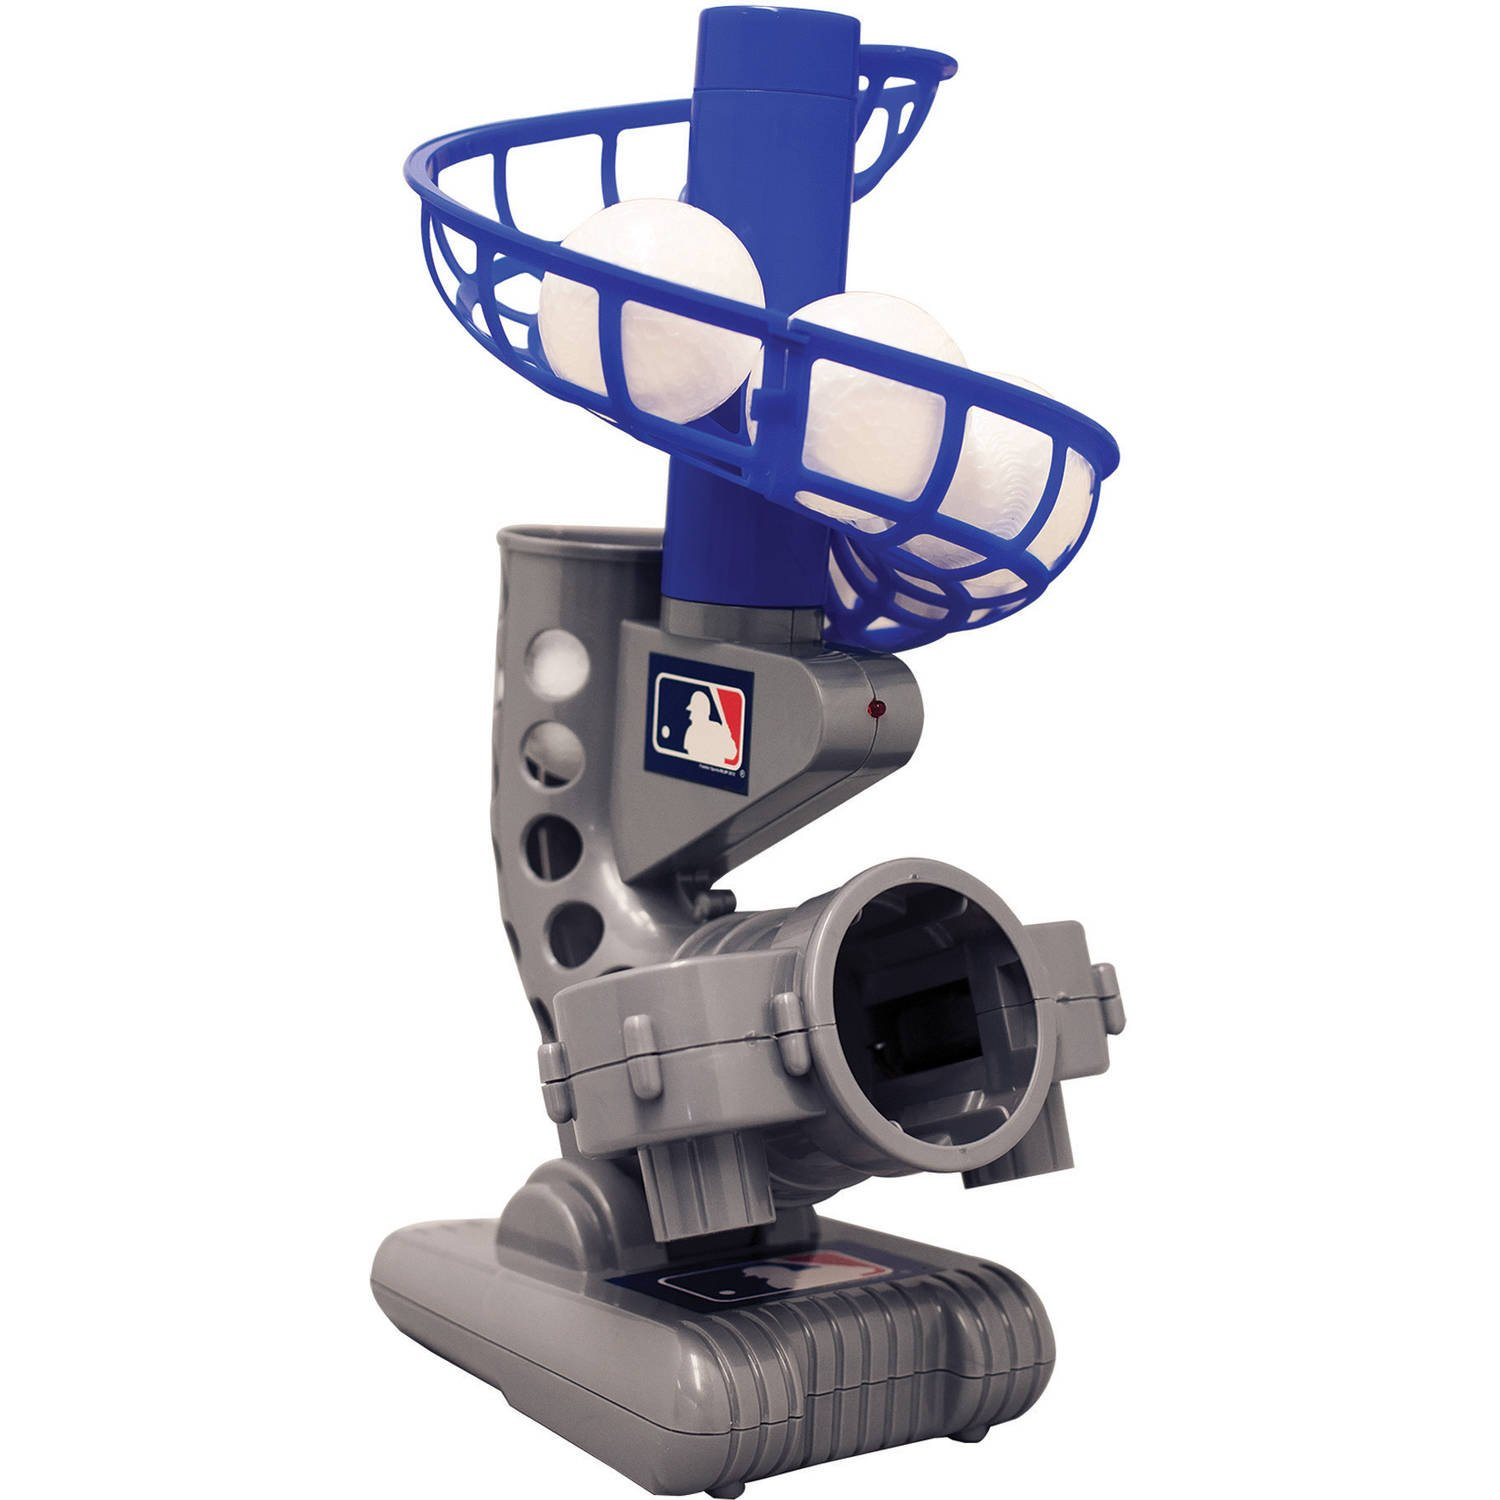 Franklin Sports MLB Youth Baseball Pitching Machine by Unknown